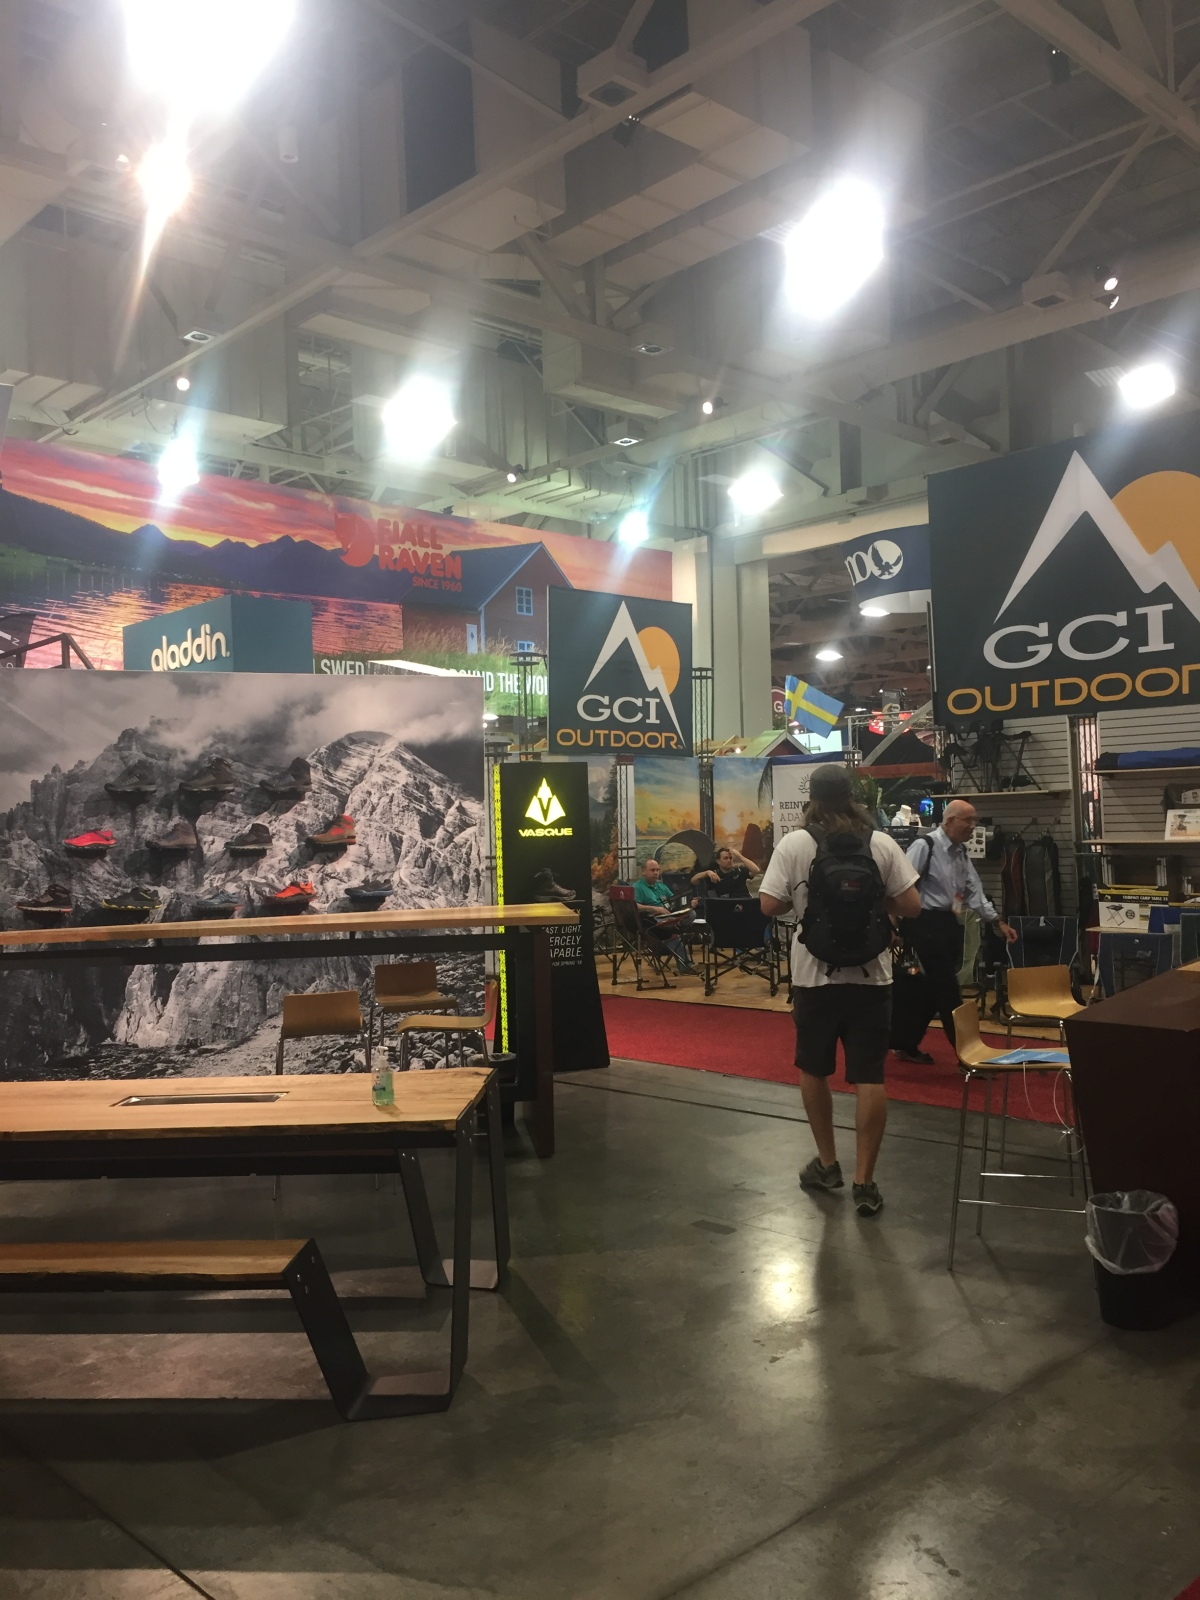 Outdoor Retailer: Condensed Overview